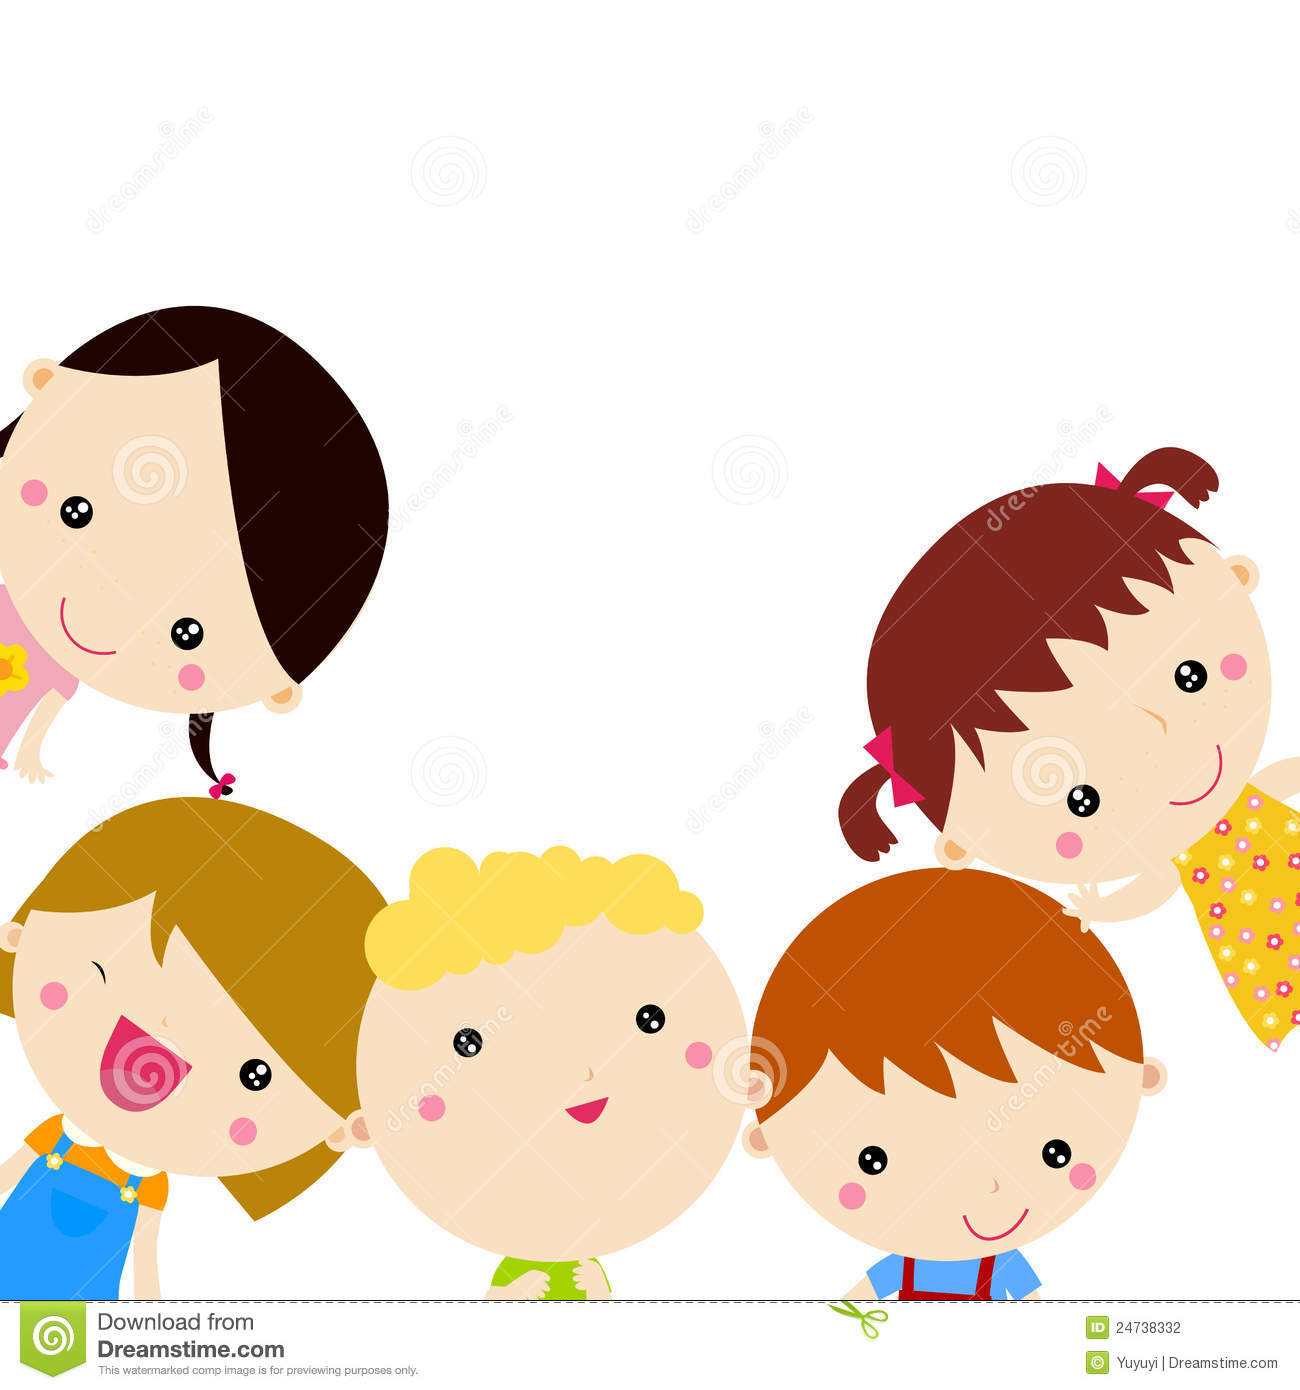 Cute Cartoon Kids Frame Stock Photography - Image: 24738332 How To Draw Animals For Kids